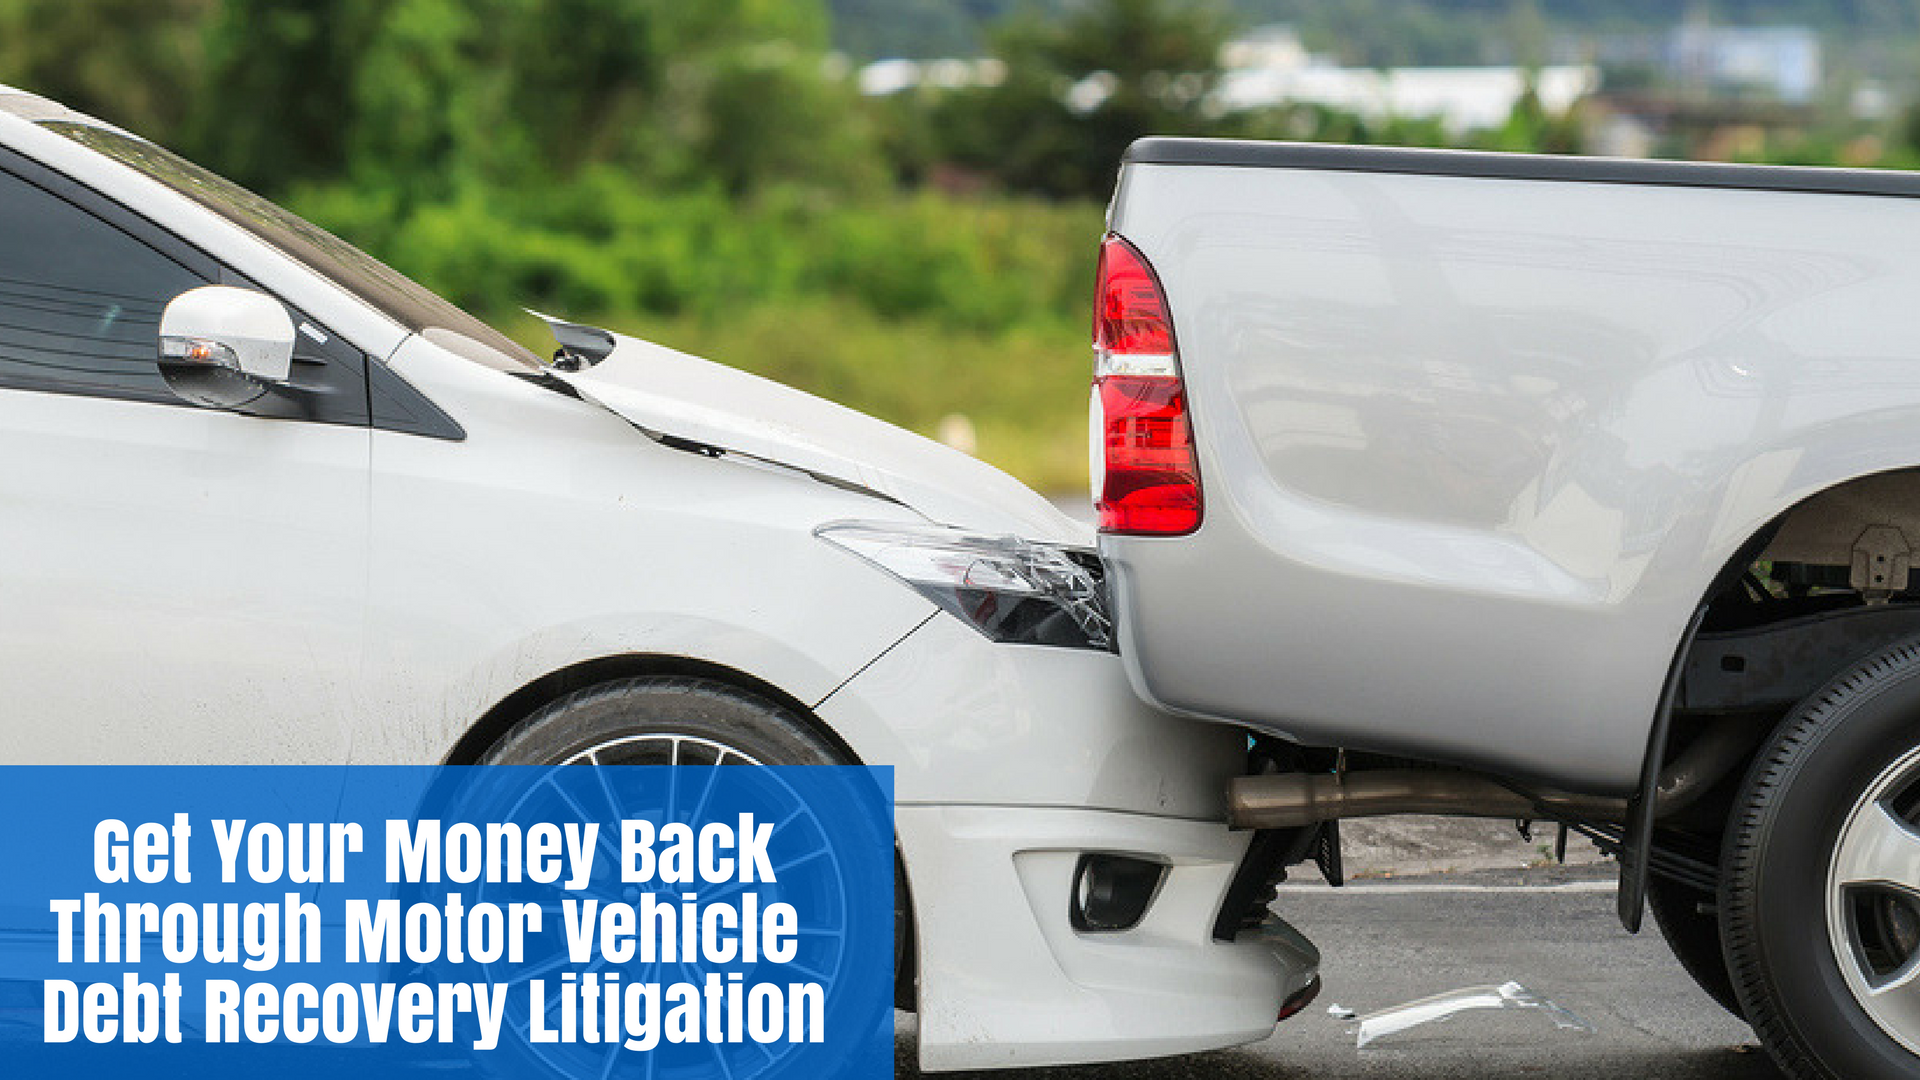 Get Your Money Back Through Motor Vehicle Debt Recovery Litigation